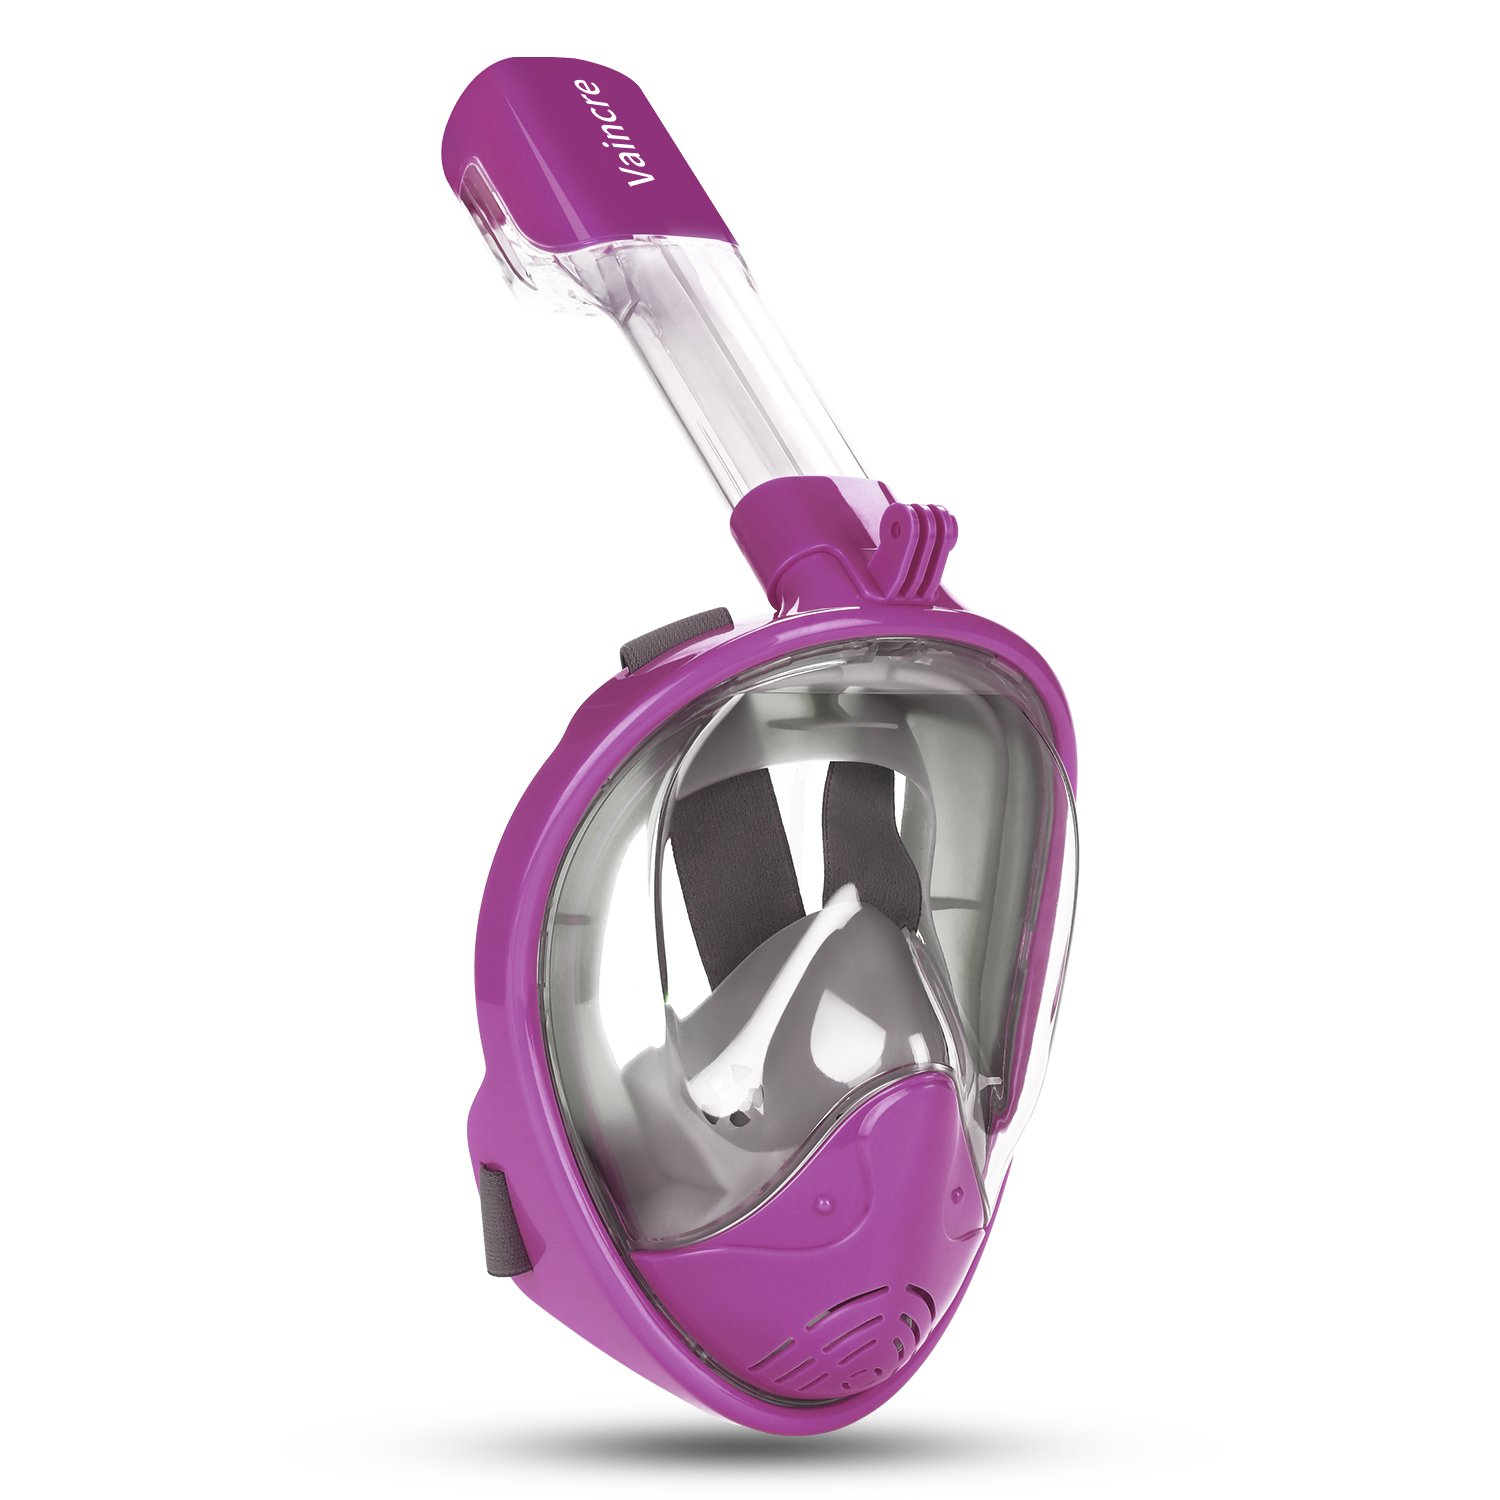 Vaincre 180° Full Face Snorkel Mask Panoramic View Anti-Fog,Anti-Leak Snorkeling Design with Adjustable Head Straps-See Larger Viewing Area Than Traditional Masks for Adults Youth(Purple, S/M) by Vaincre